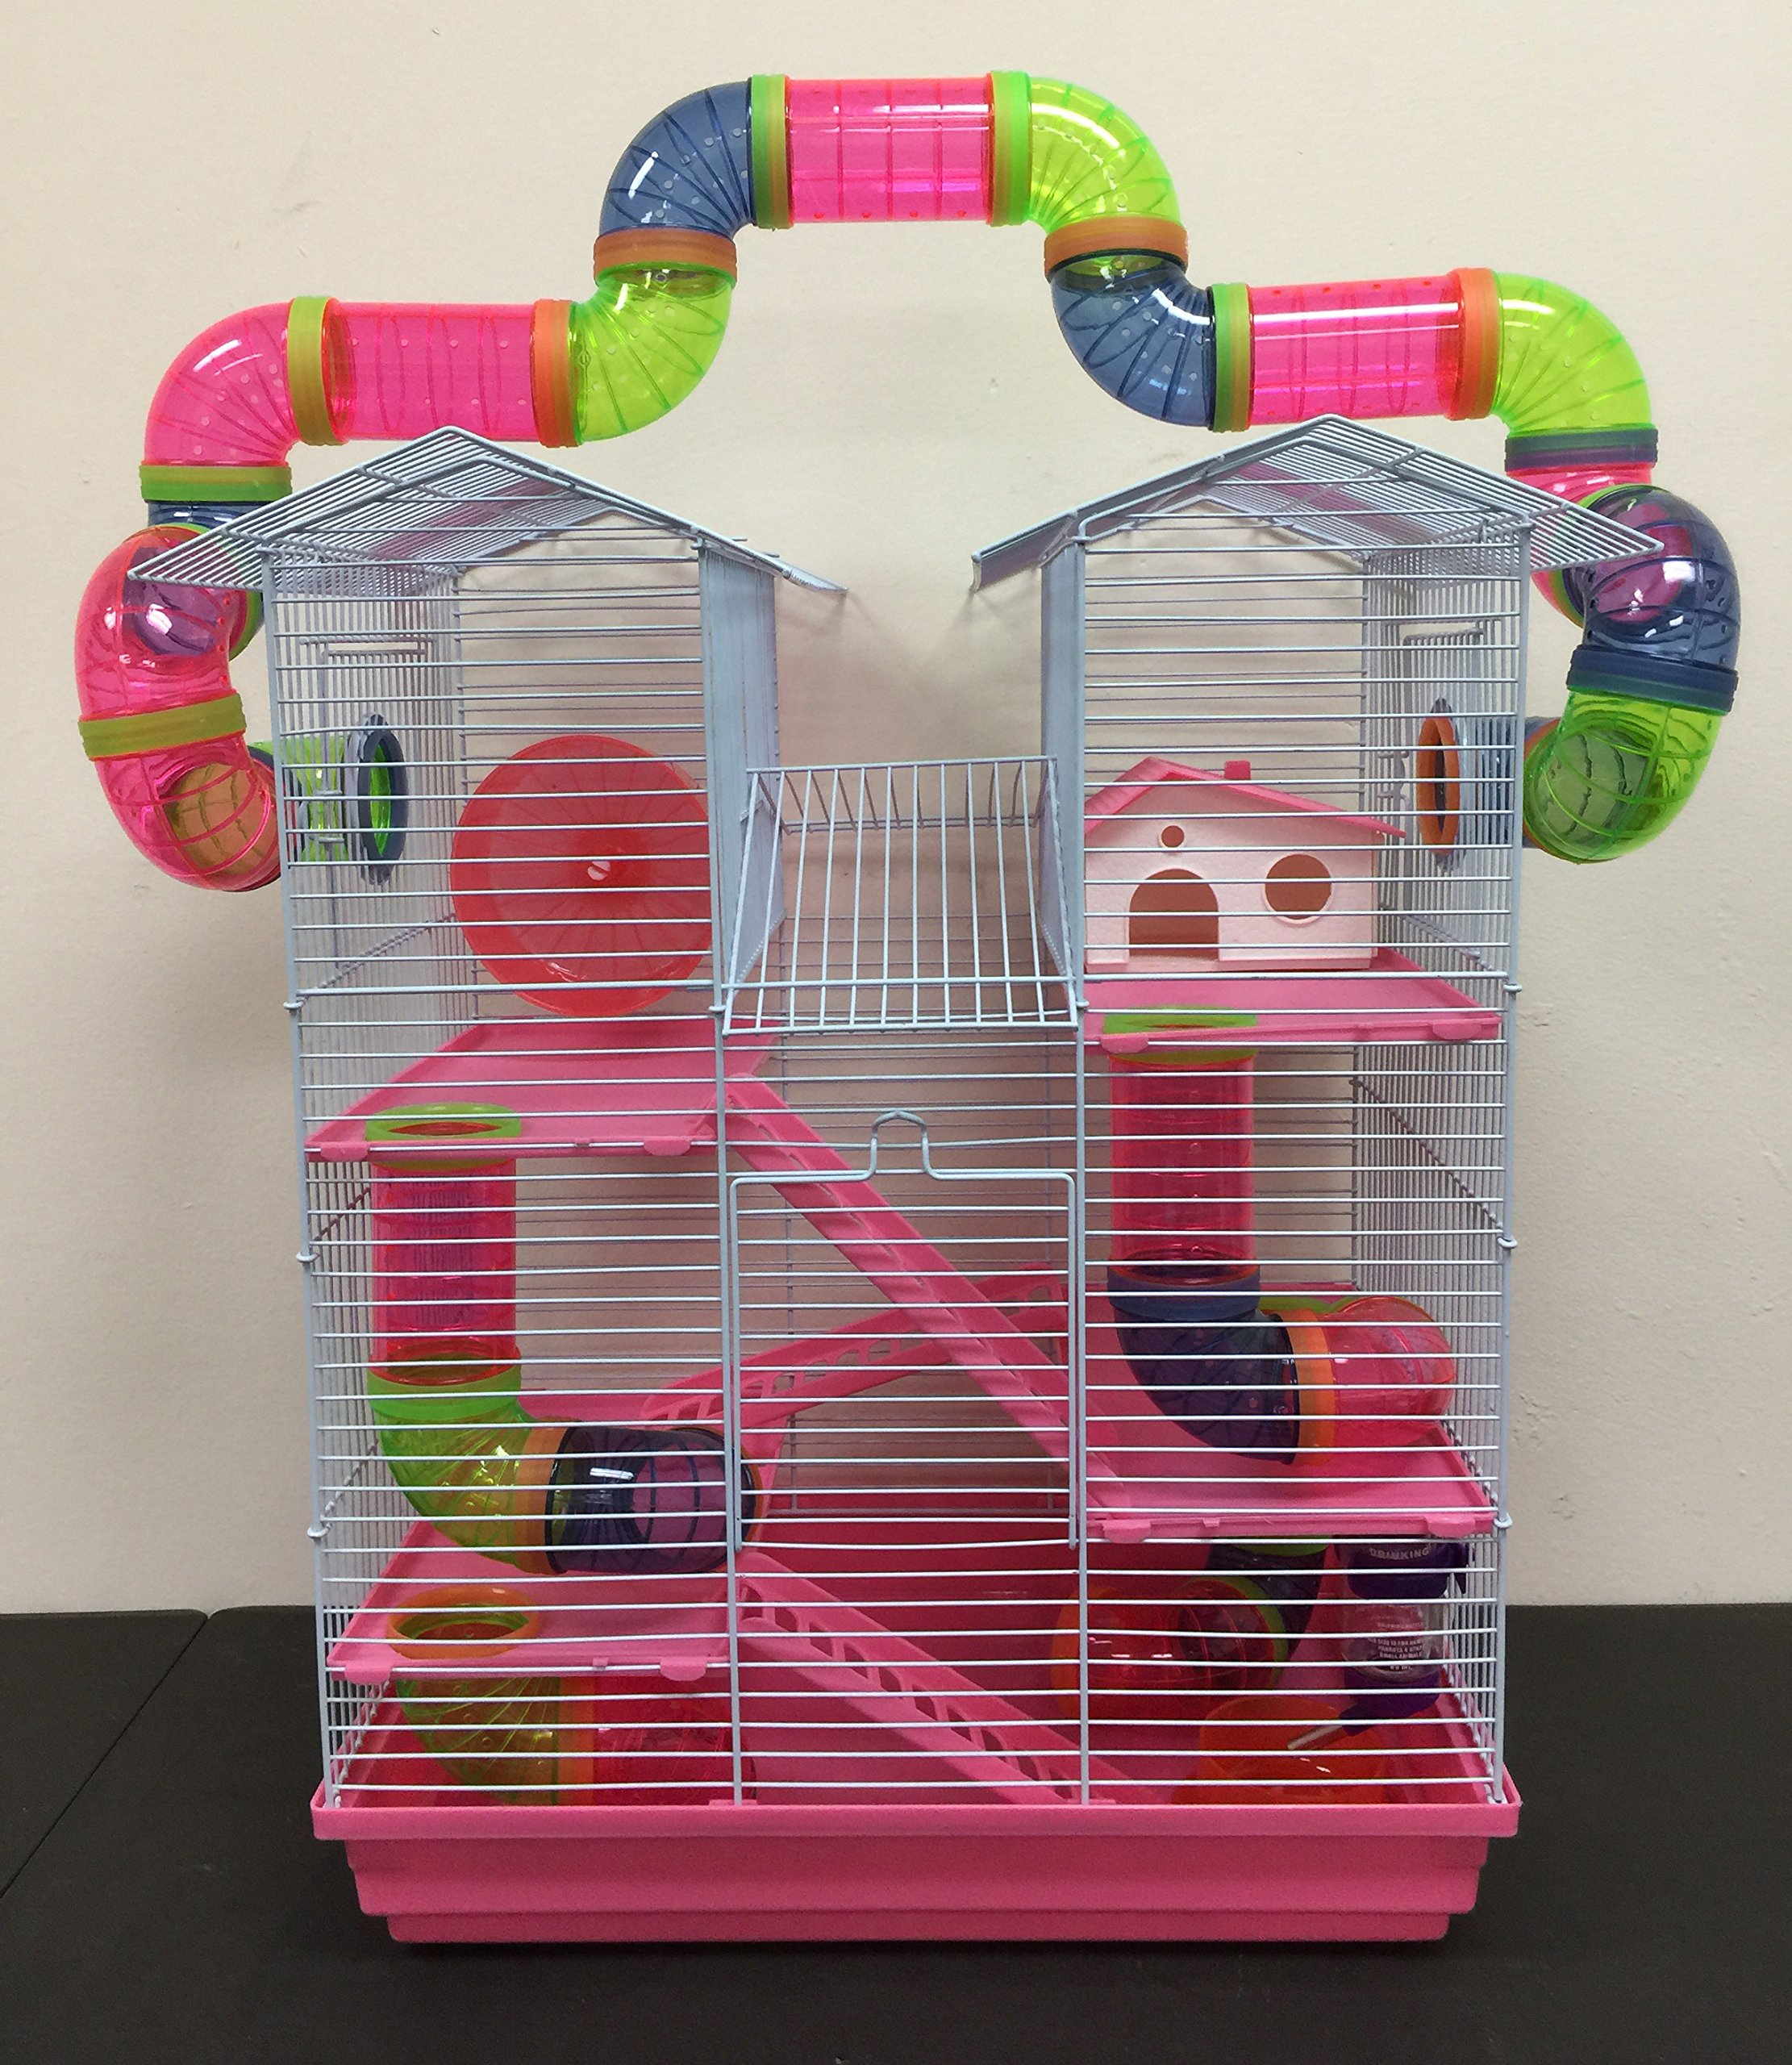 NEW Large Twin Towner Habitat Hamster Rodent Gerbils Mouse Mice Guinea Pig Cage (Pink, With Crossing Tube)